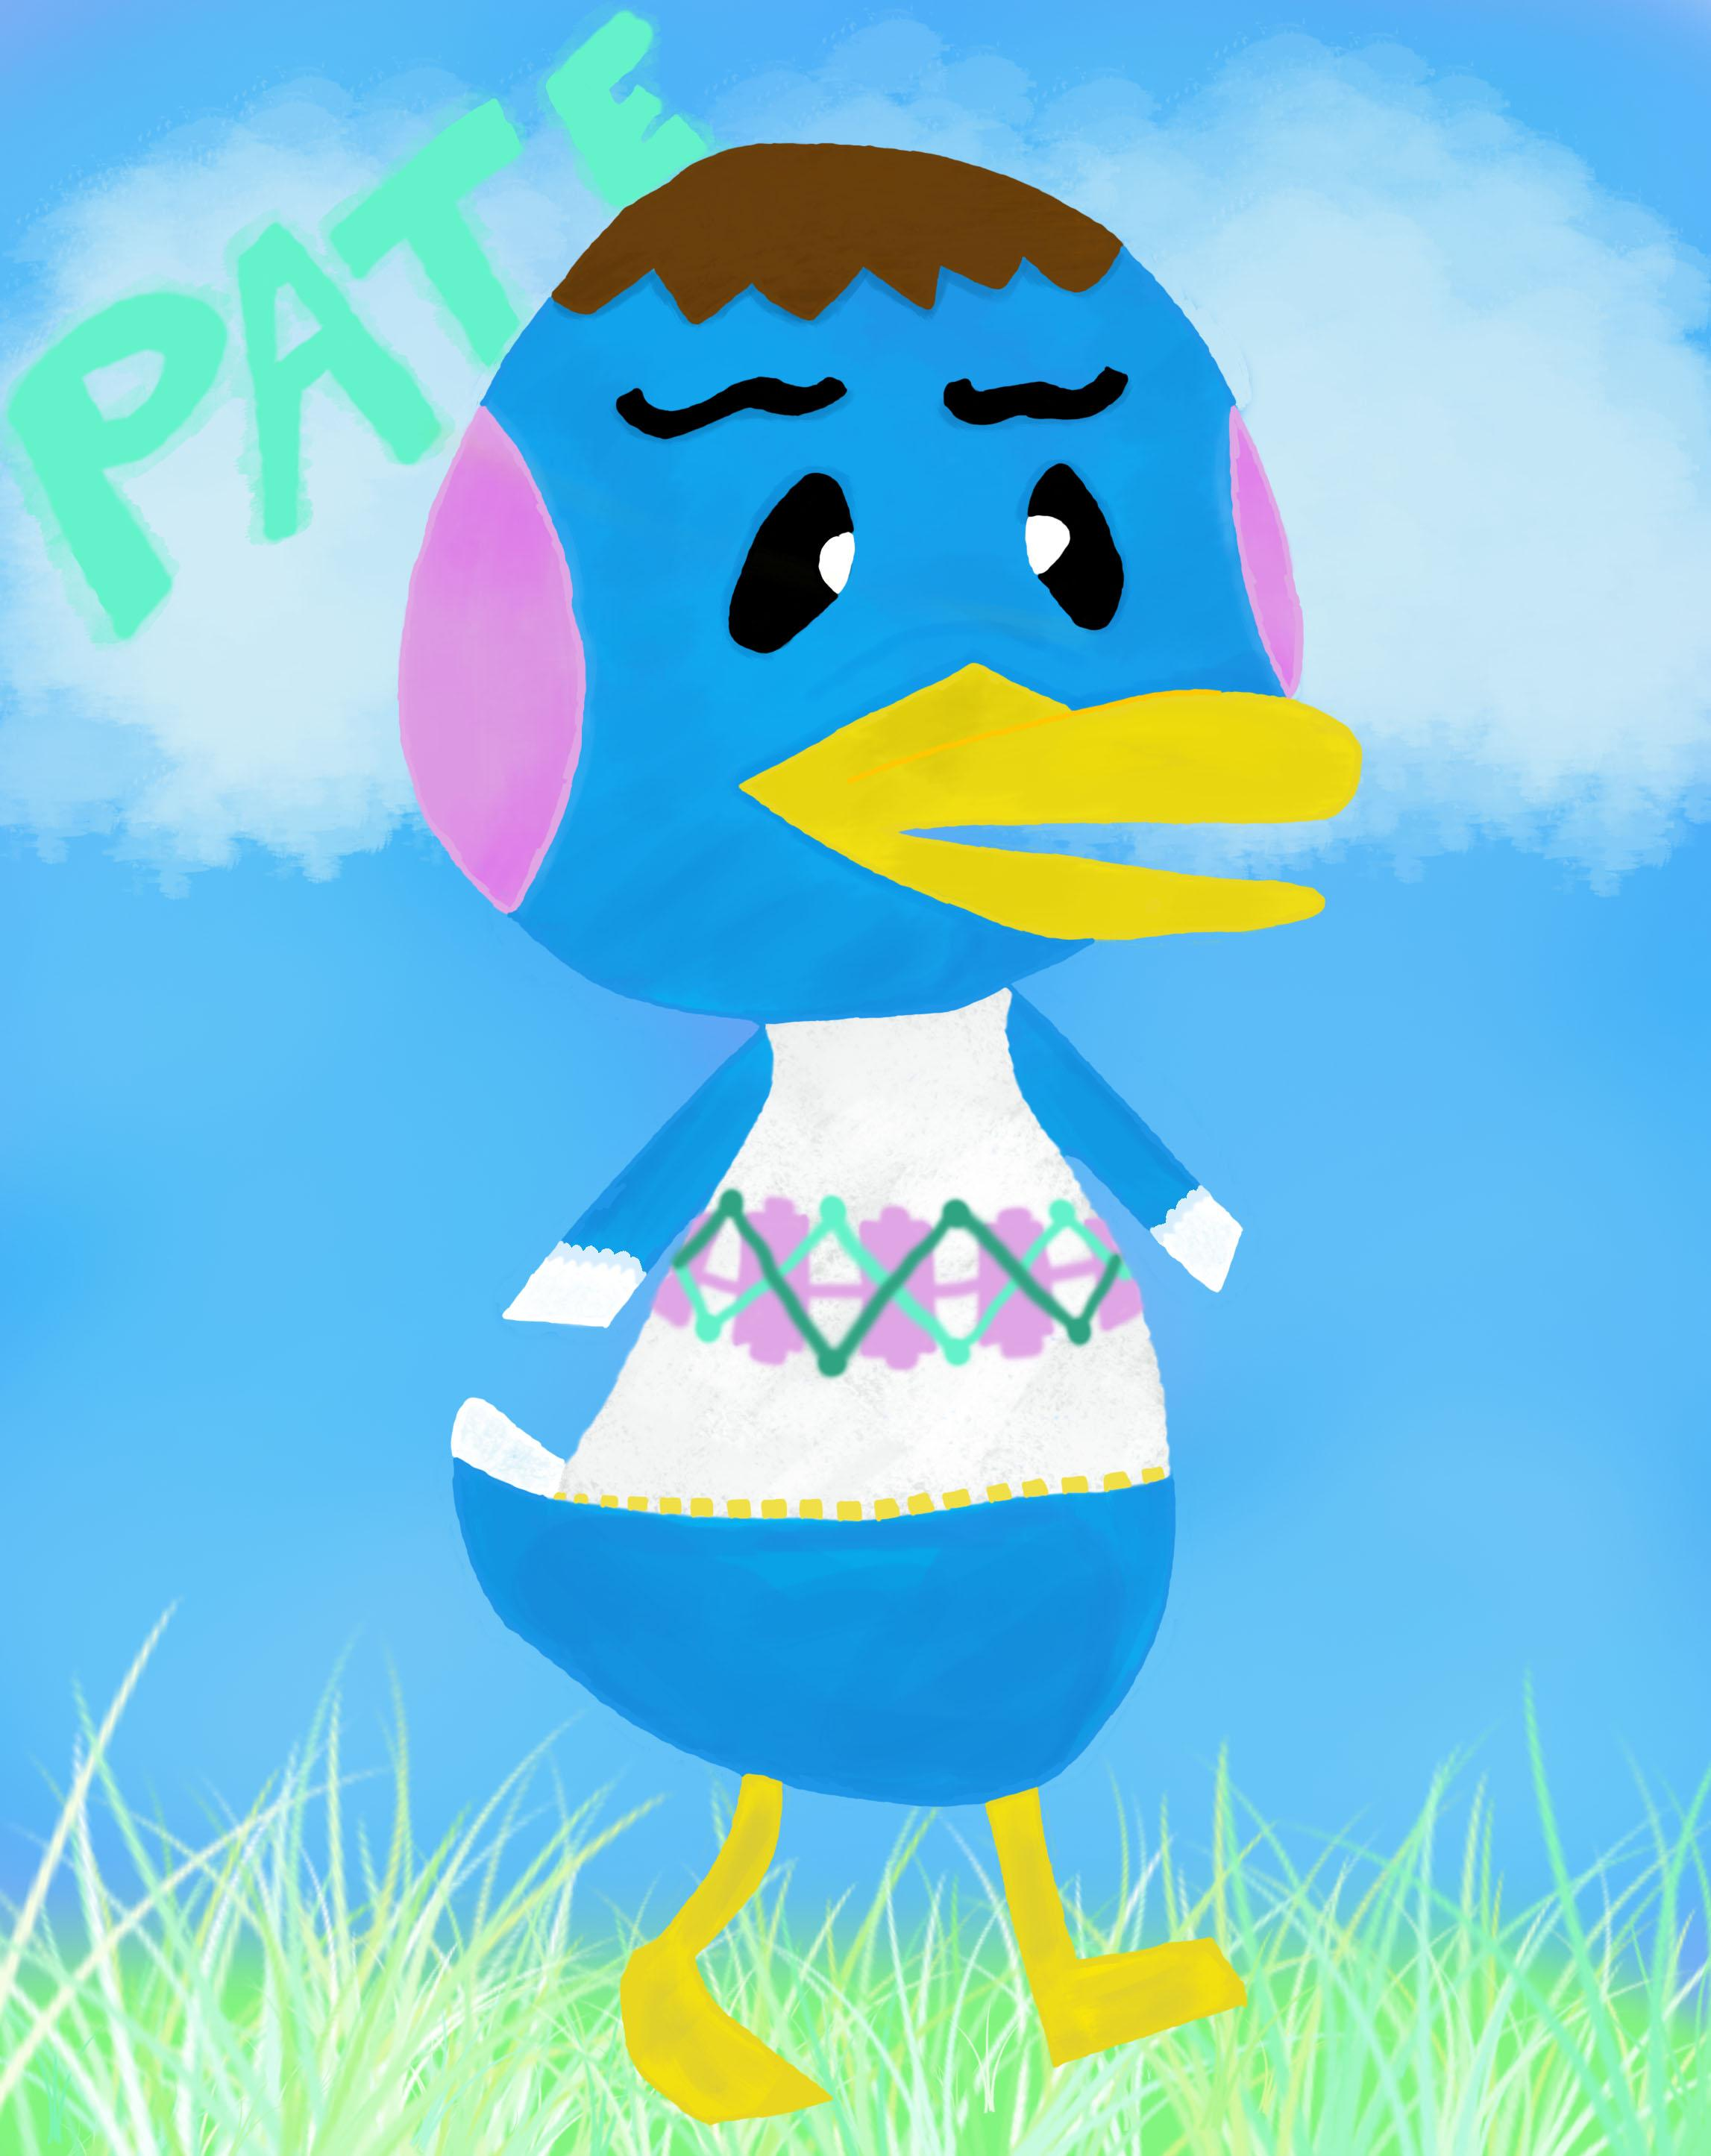 Animal Crossing Villager Pate The Peppy Duck Skillshare Projects